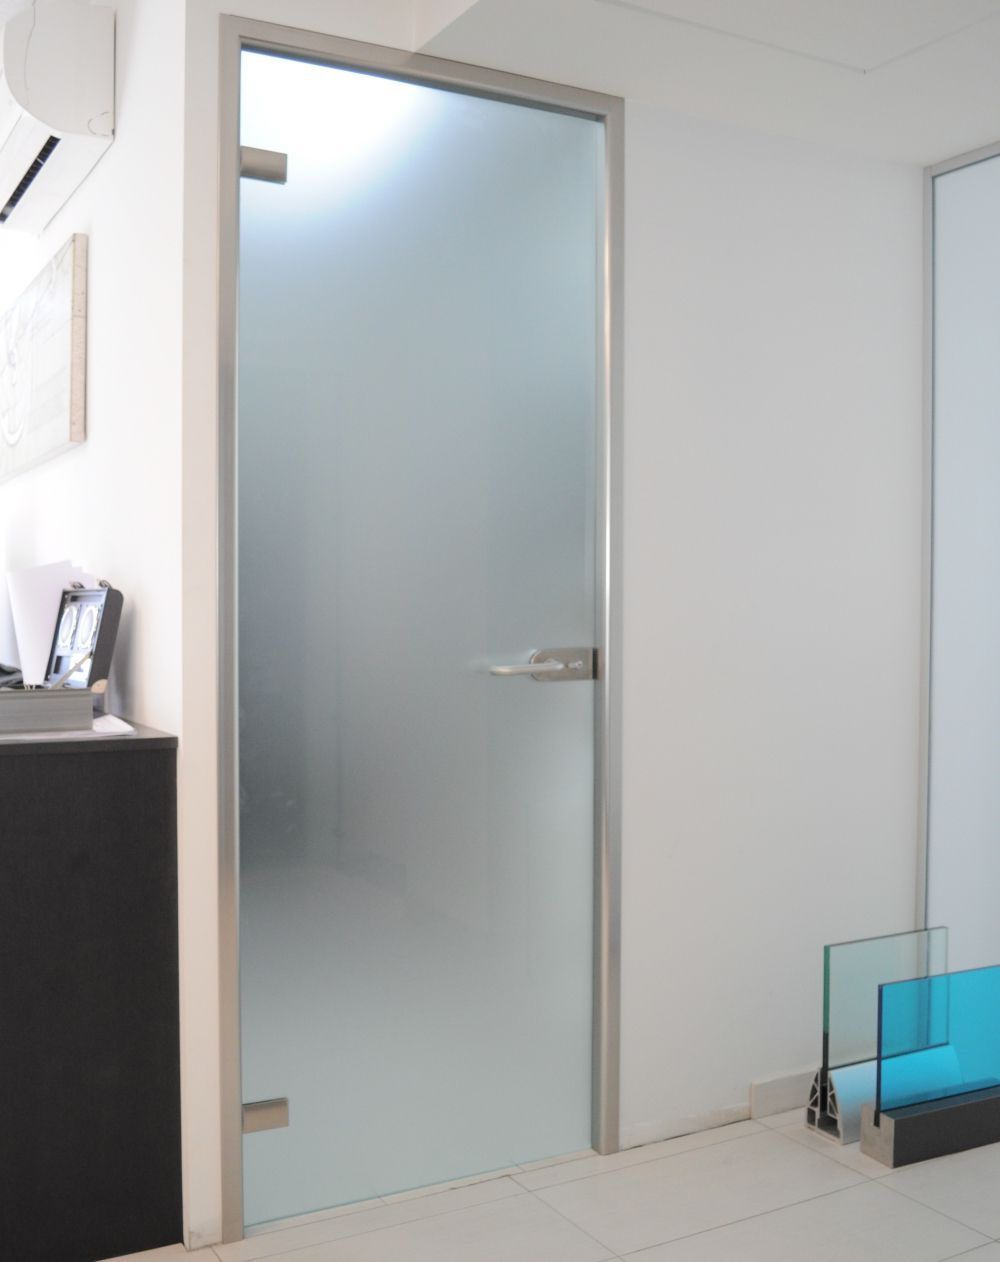 Modern frosted glass interior doors drjfxax